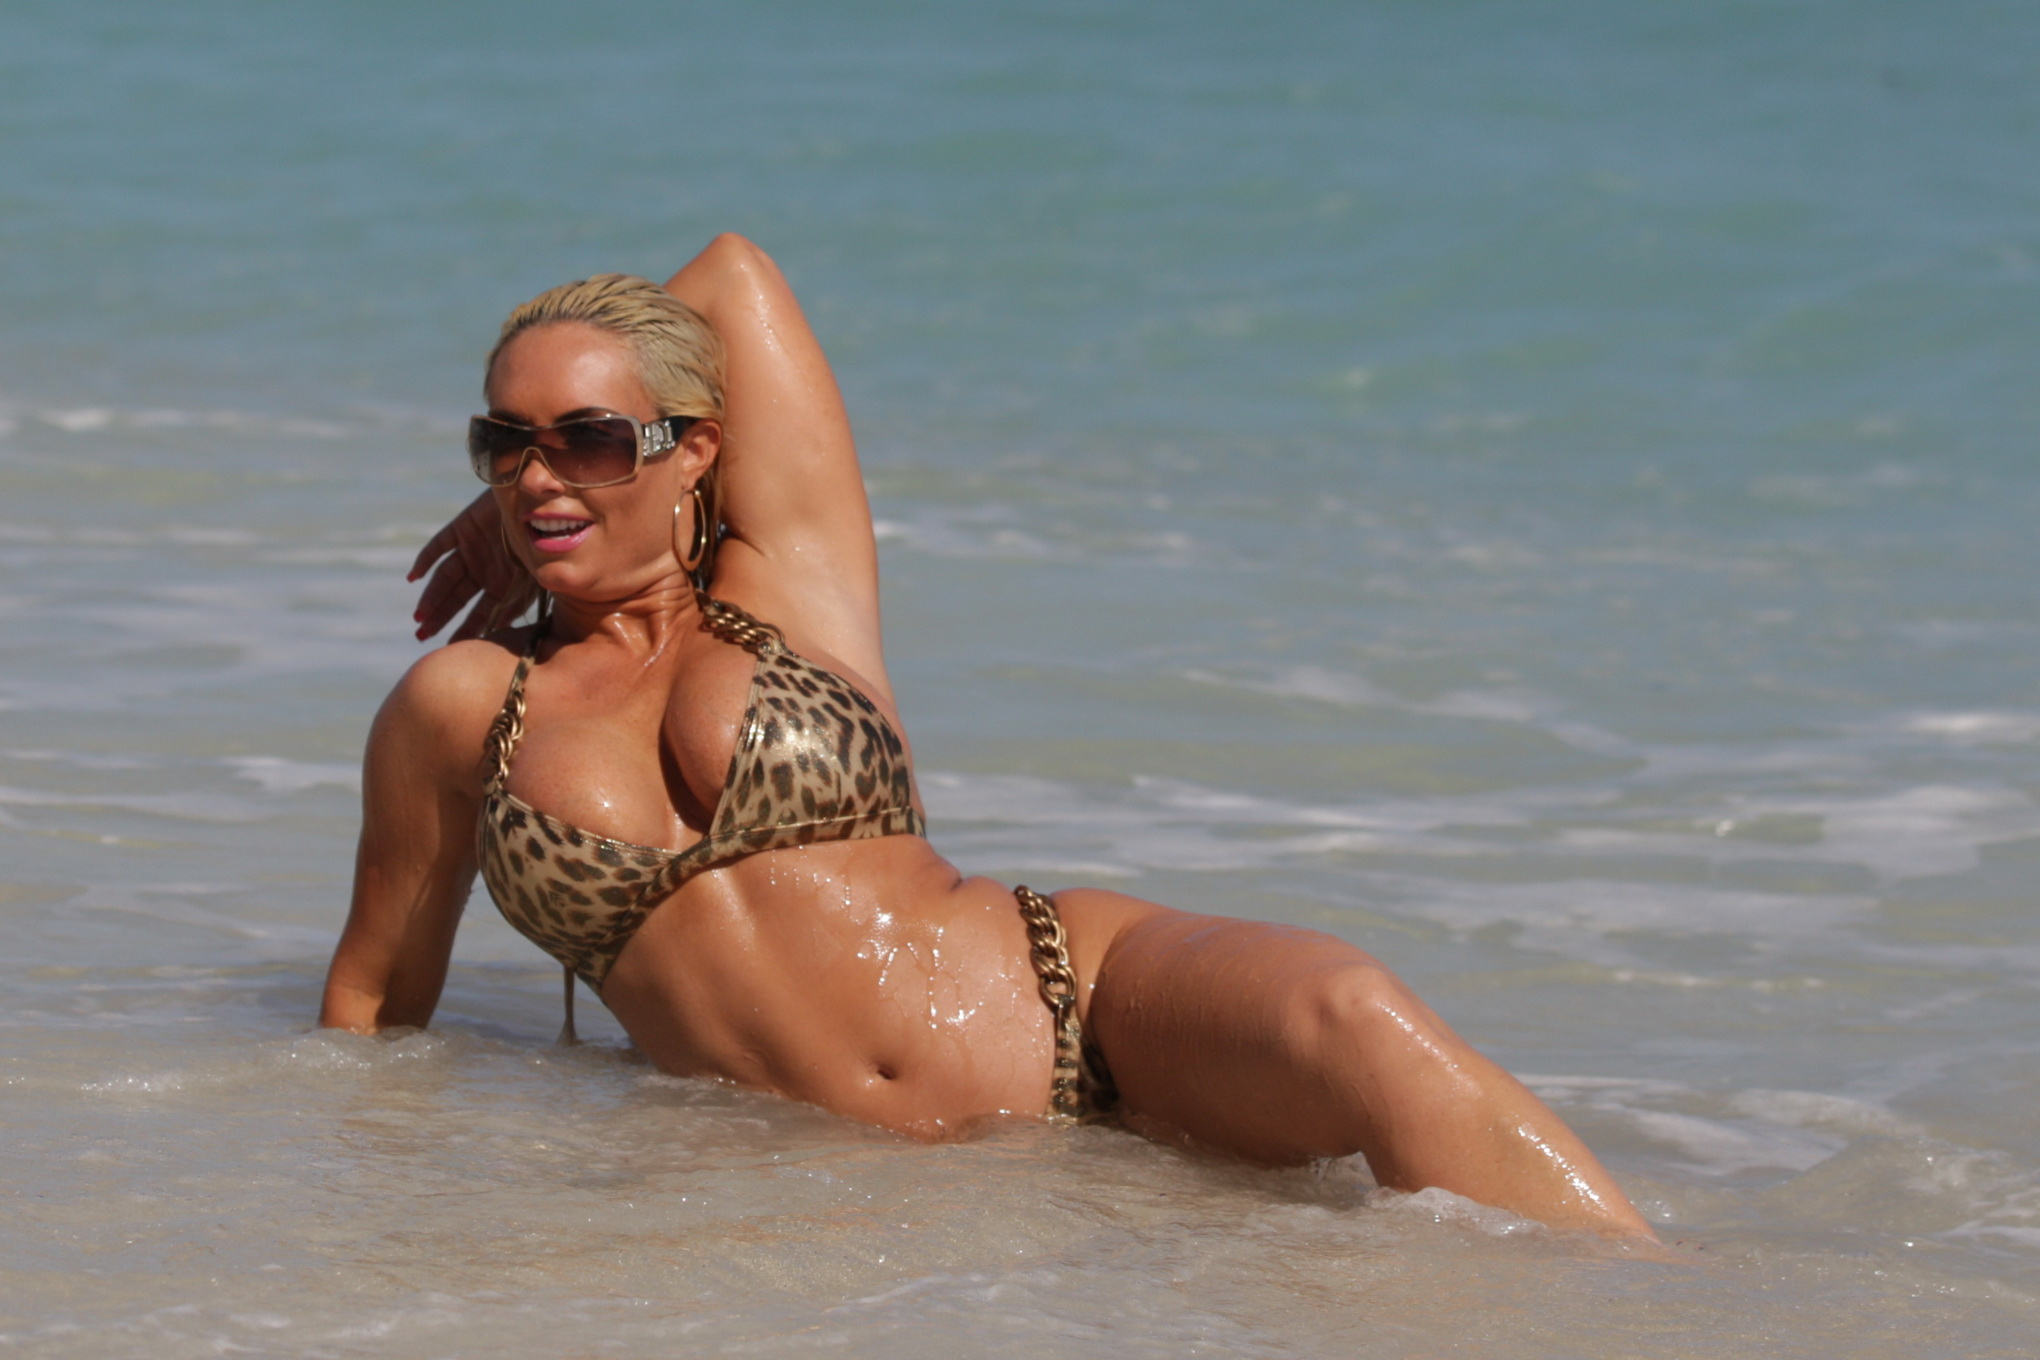 Nicole Coco Austin wearing leopard print bikini on Miami Beach